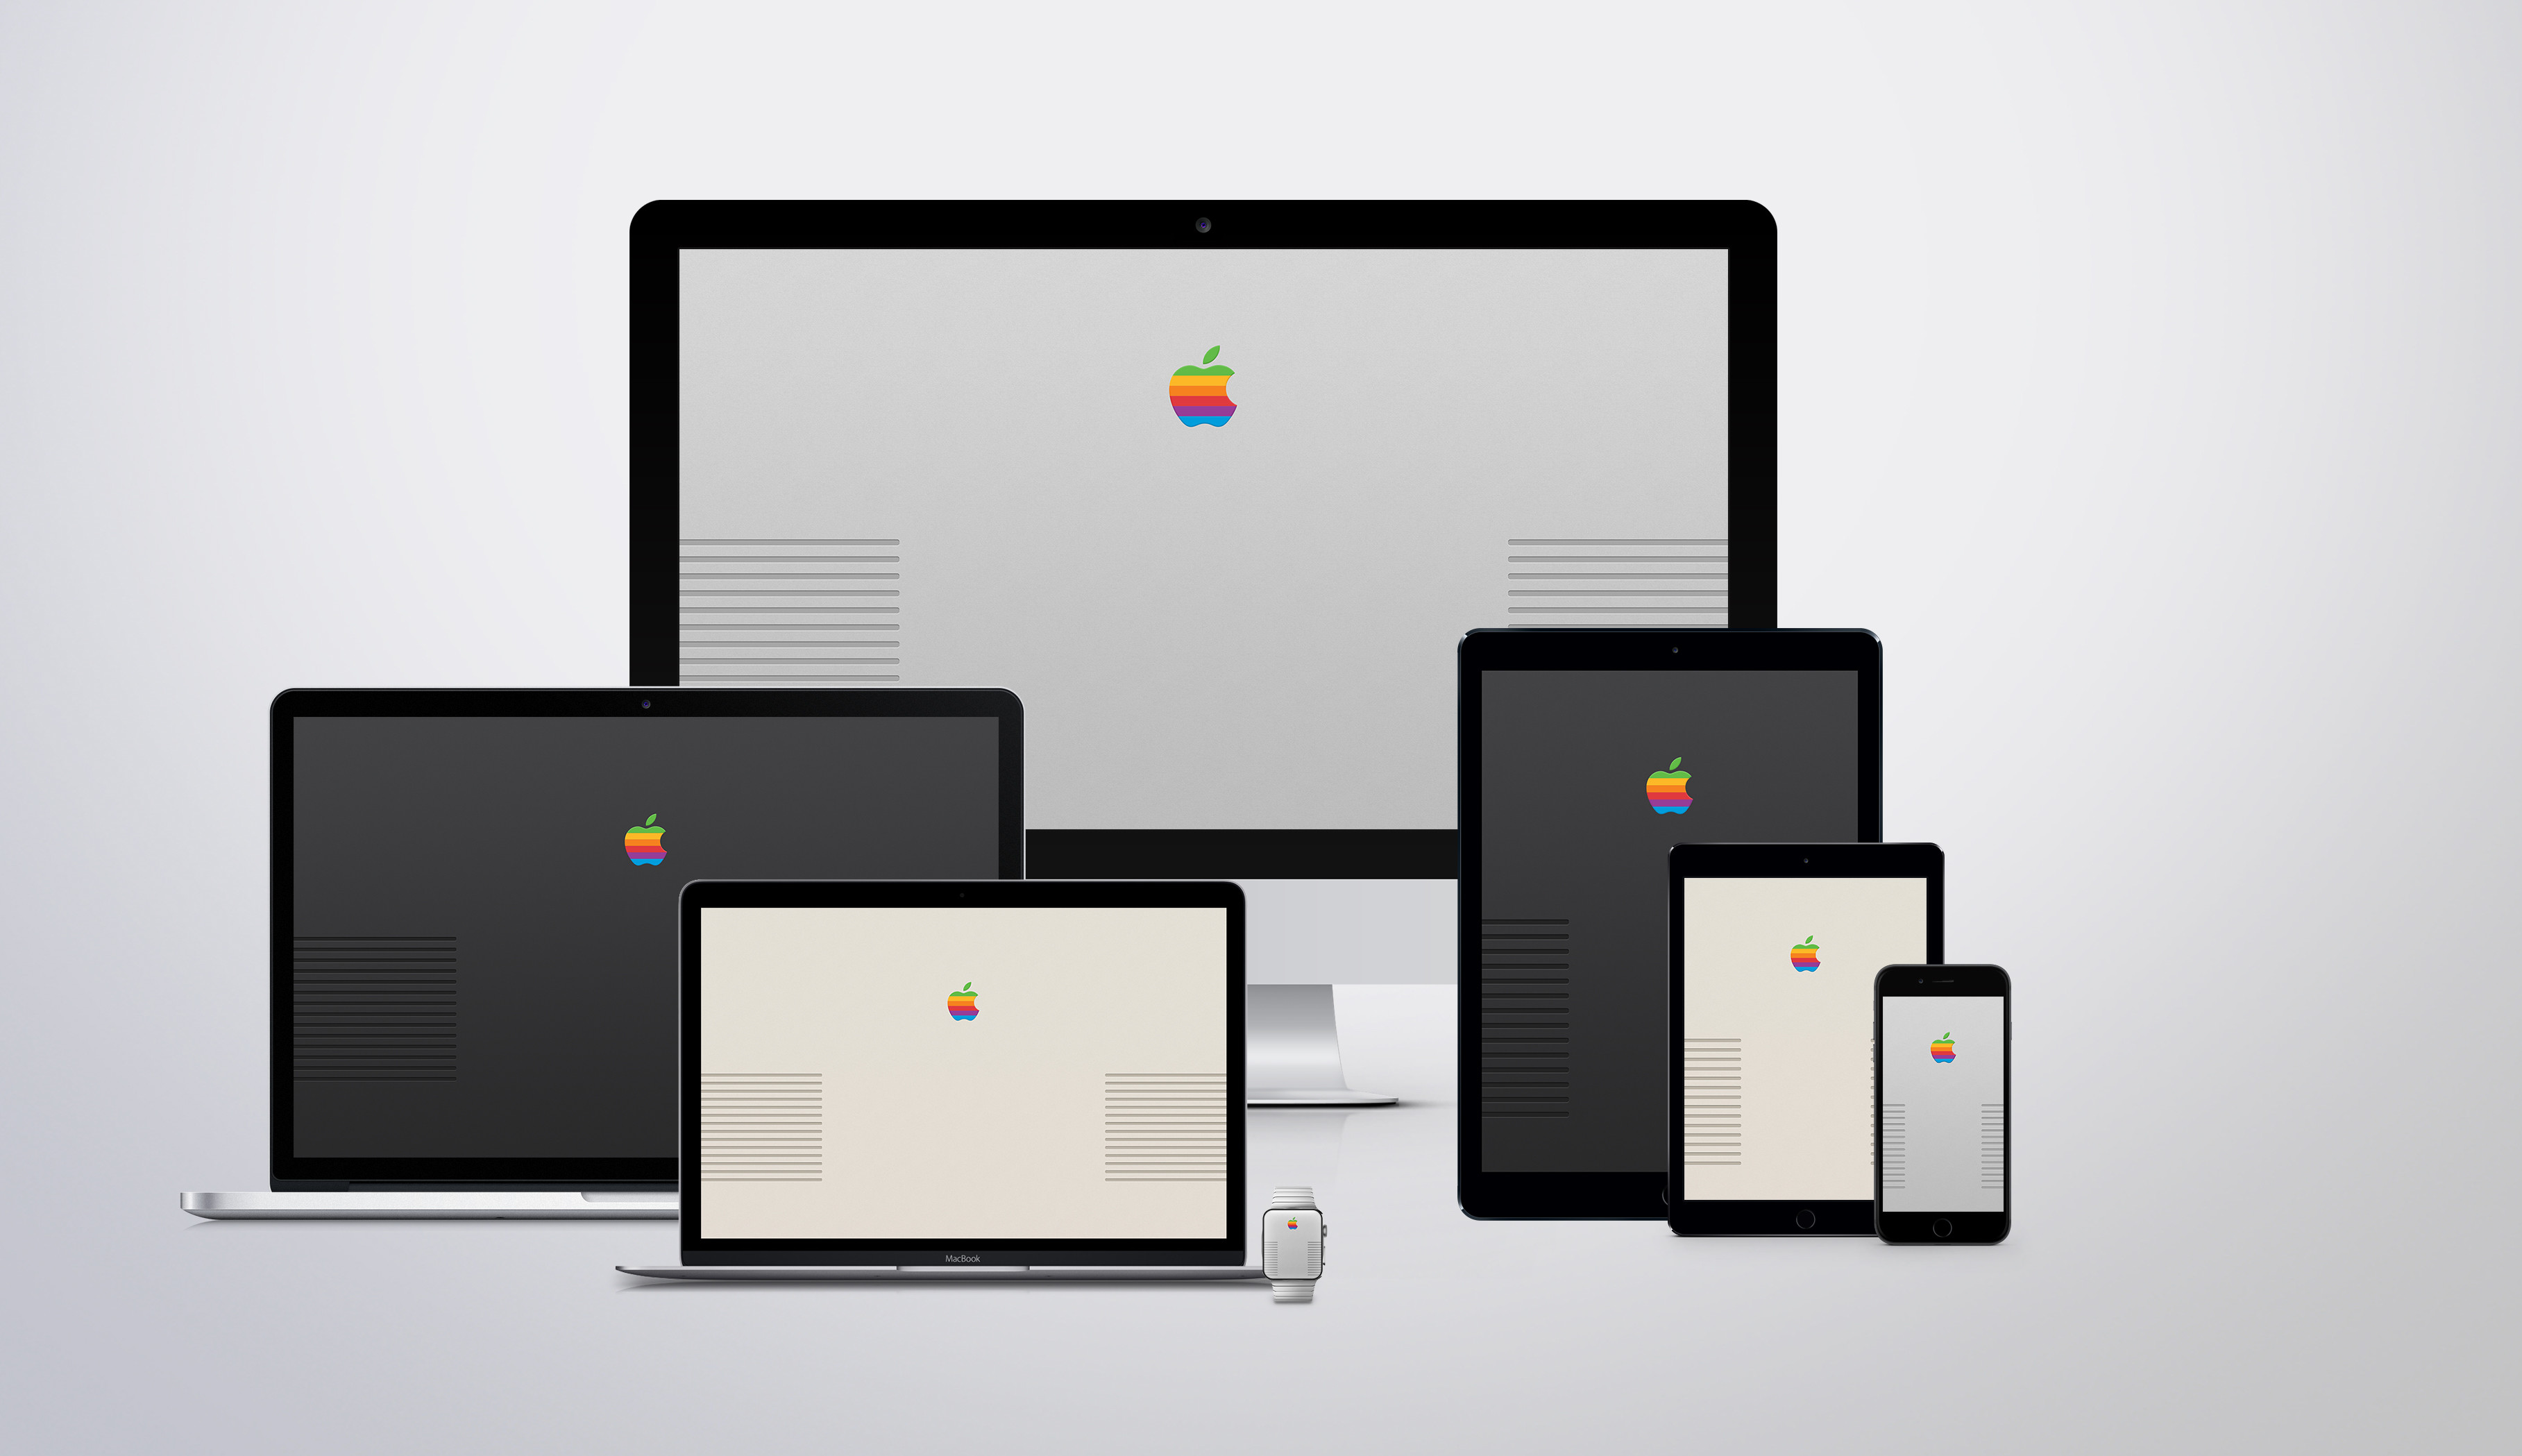 3634x2098 Retro Apple Wallpapers by JasonZigrino Retro Apple Wallpapers by  JasonZigrino